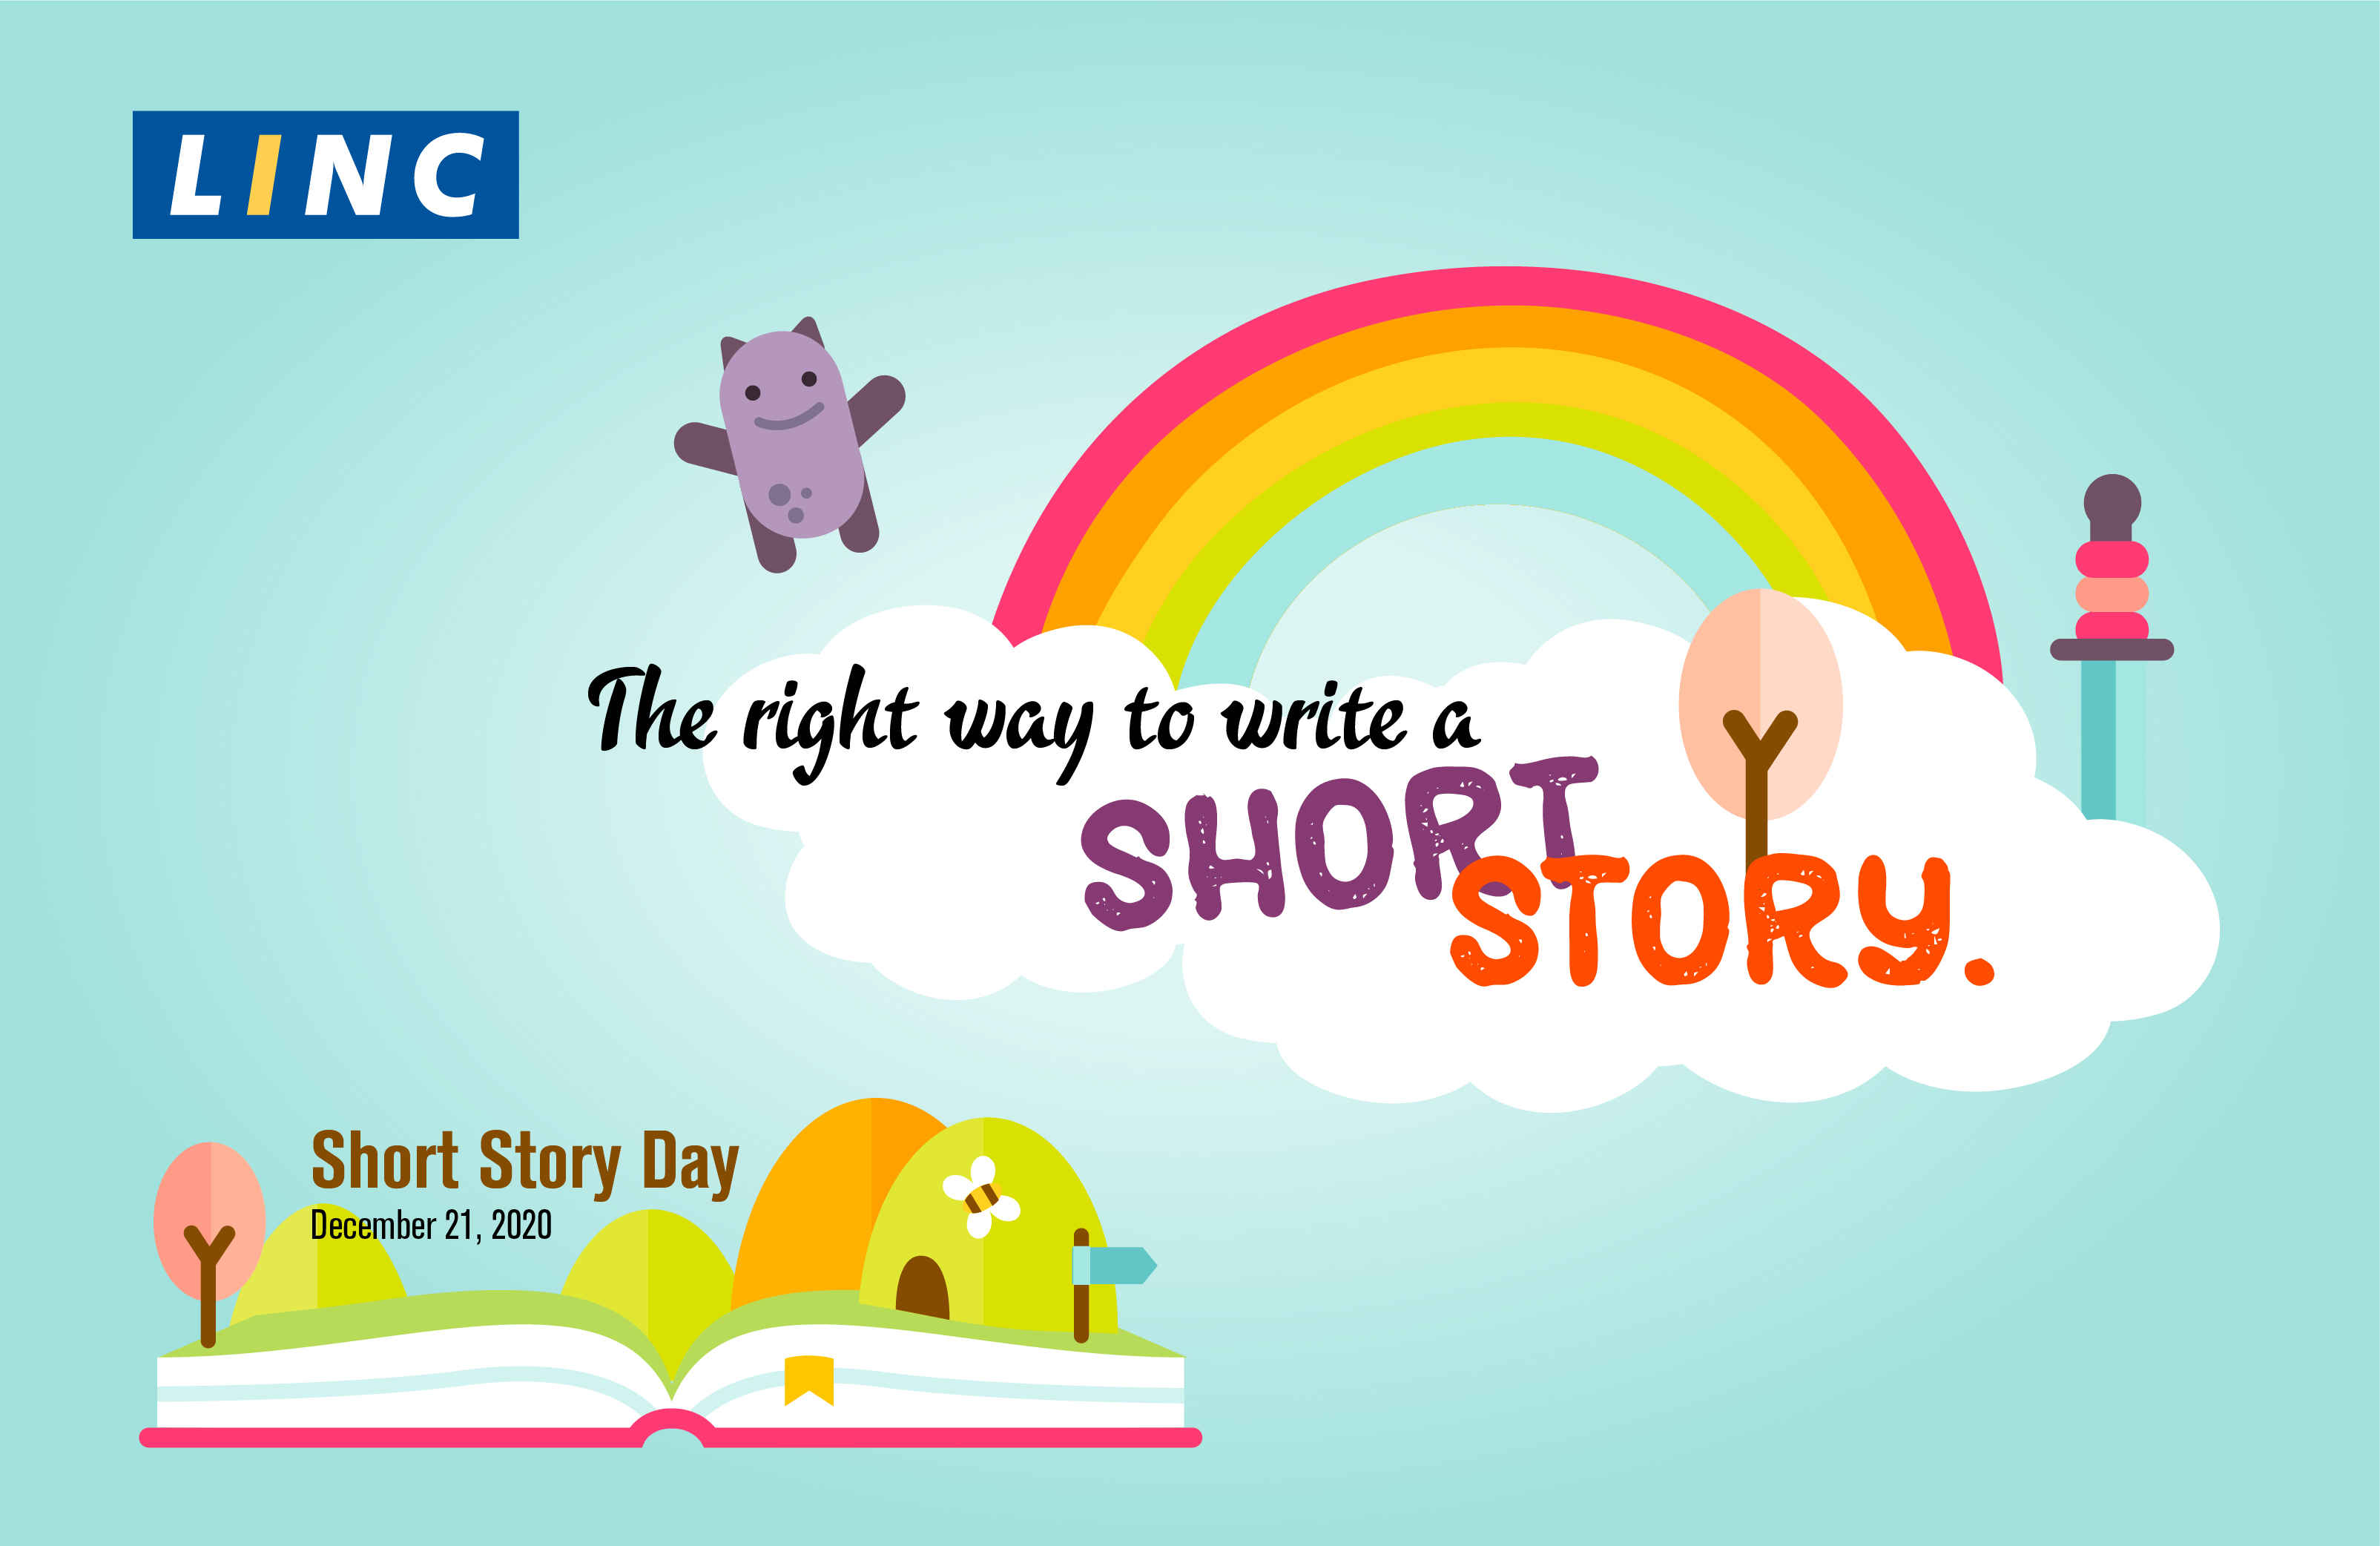 Linc Short Story Day